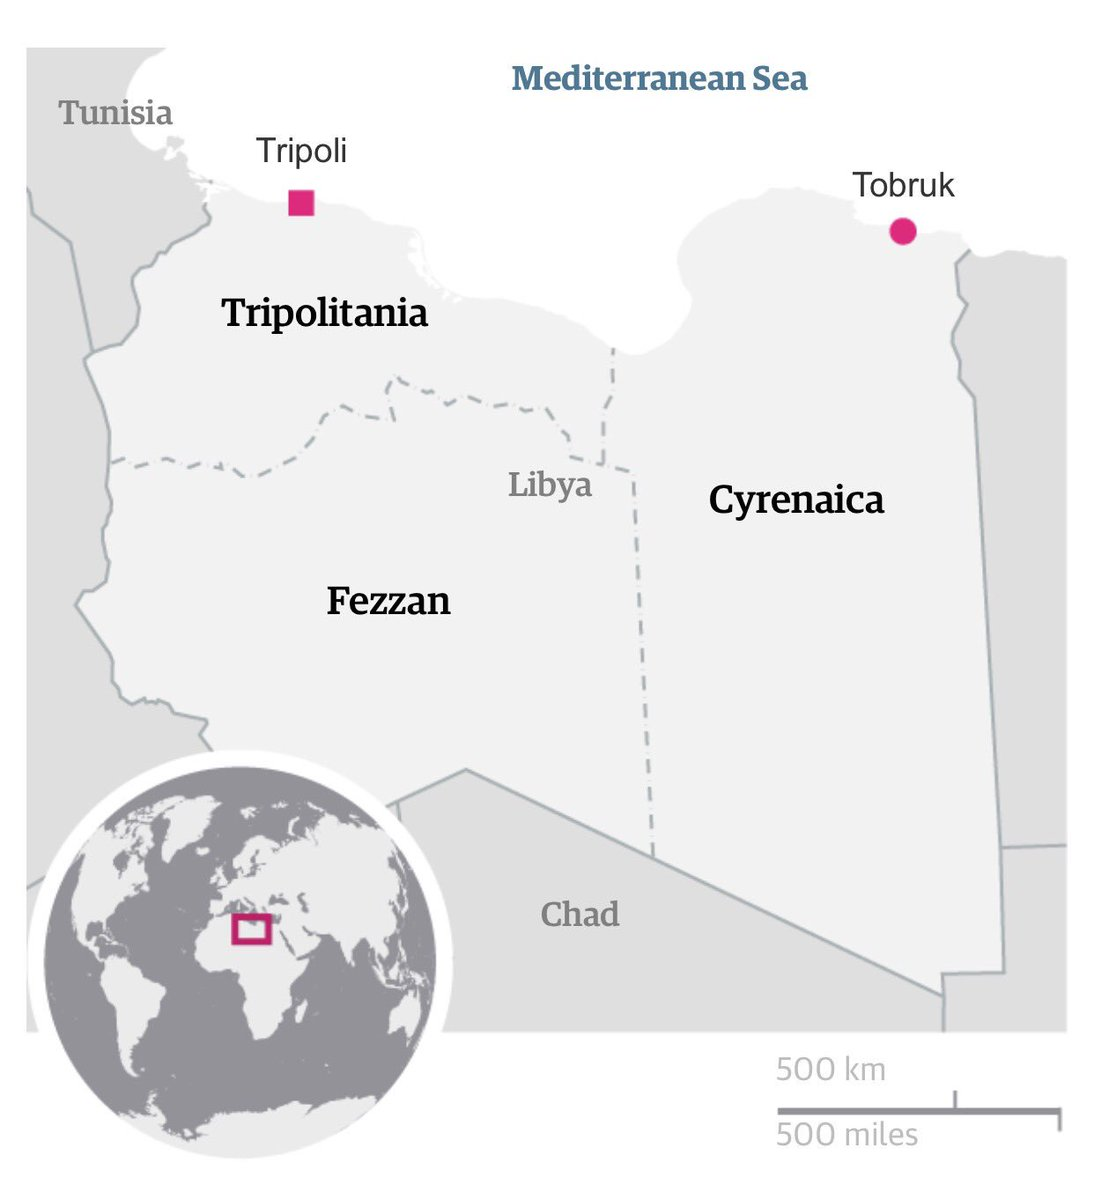 Media: Trump aide drew plan on napkin to partition Libya into three parts: Cyrenaica, Tripolitania  and  Fezzan